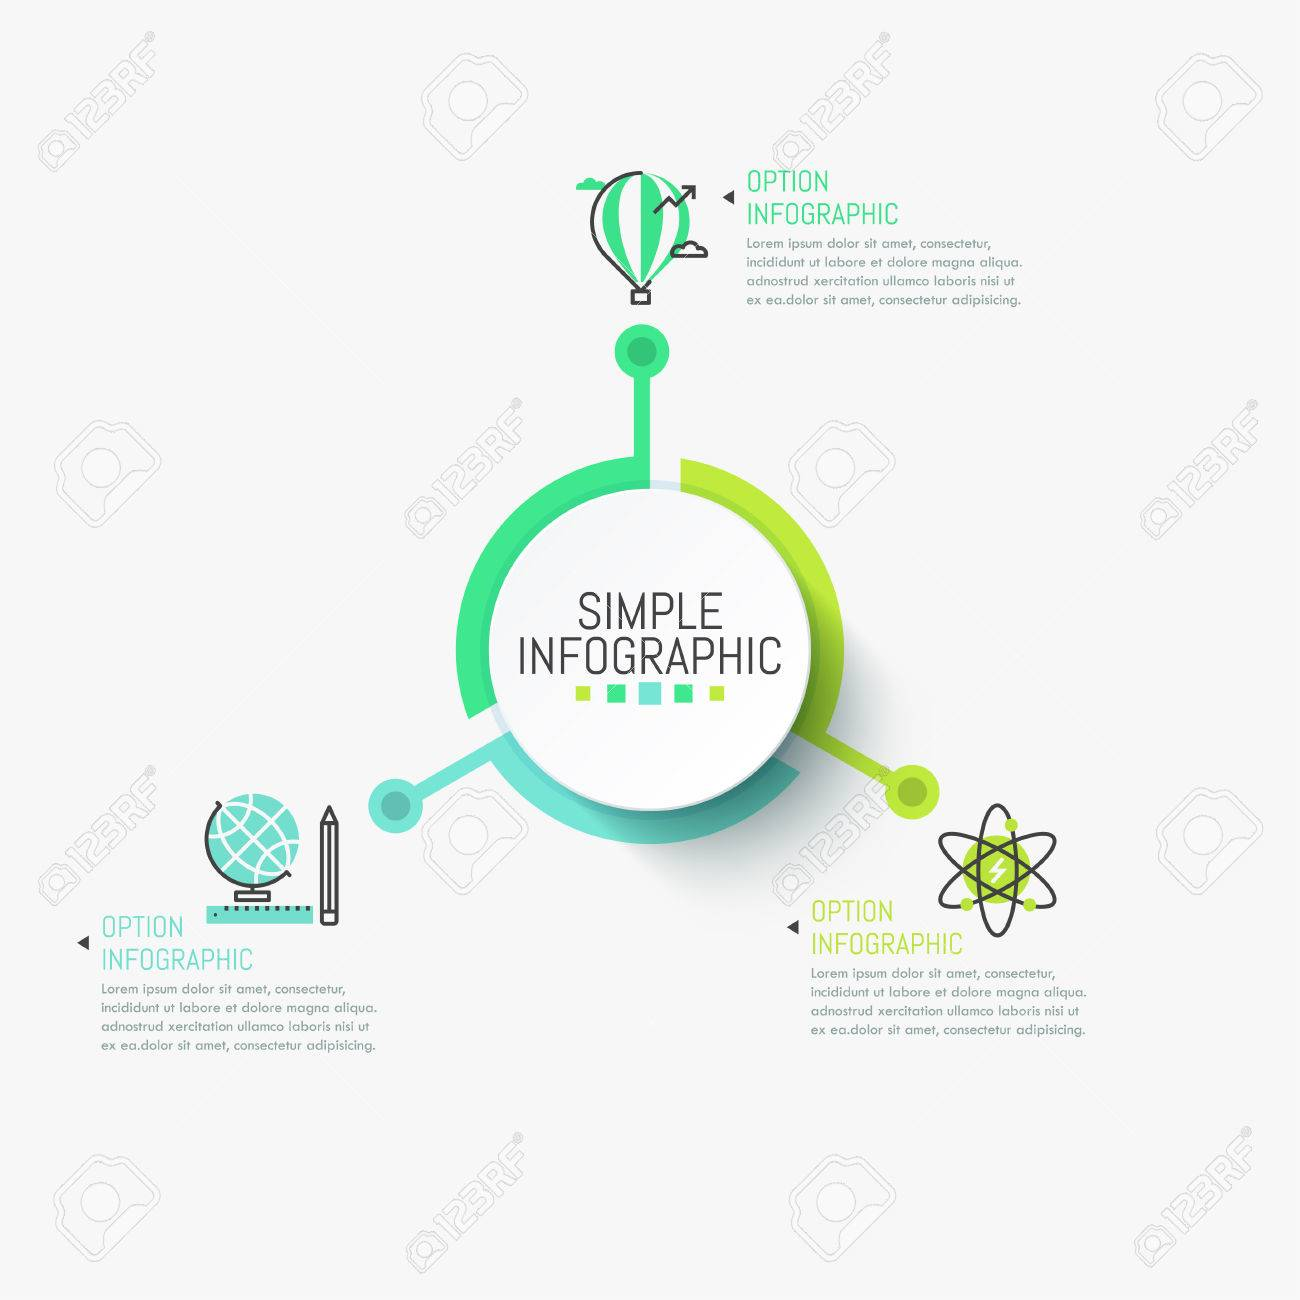 simple infographic design template. central circular element